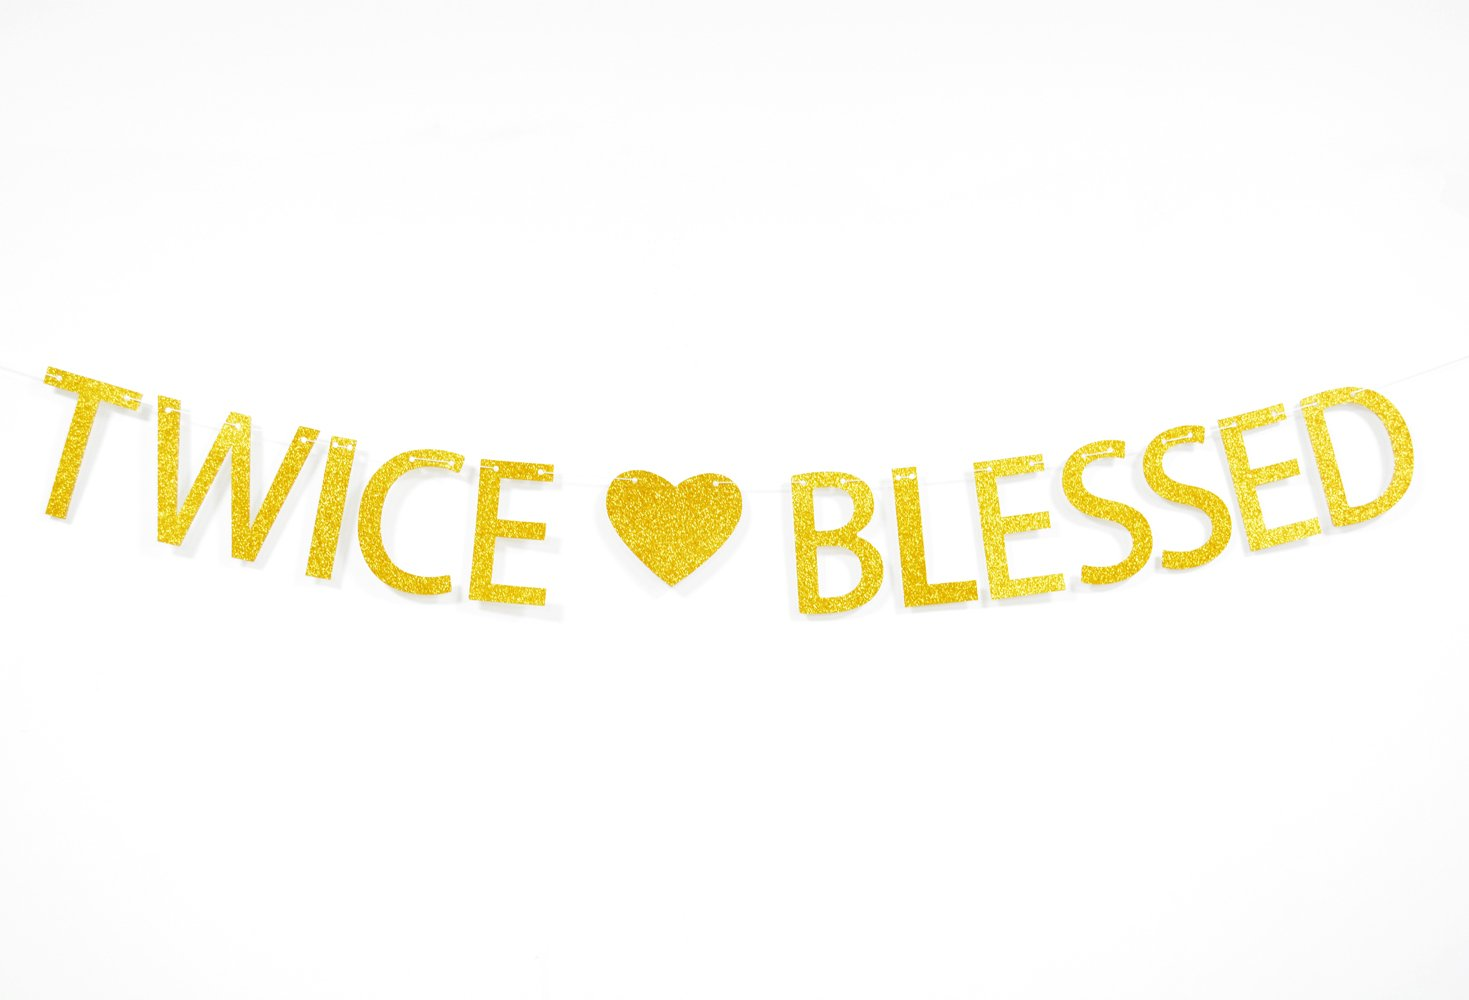 Twice Blessed Gold Glitter Banner For Twins Baby Shower,Pregnancy Announcement,Gender Reveal